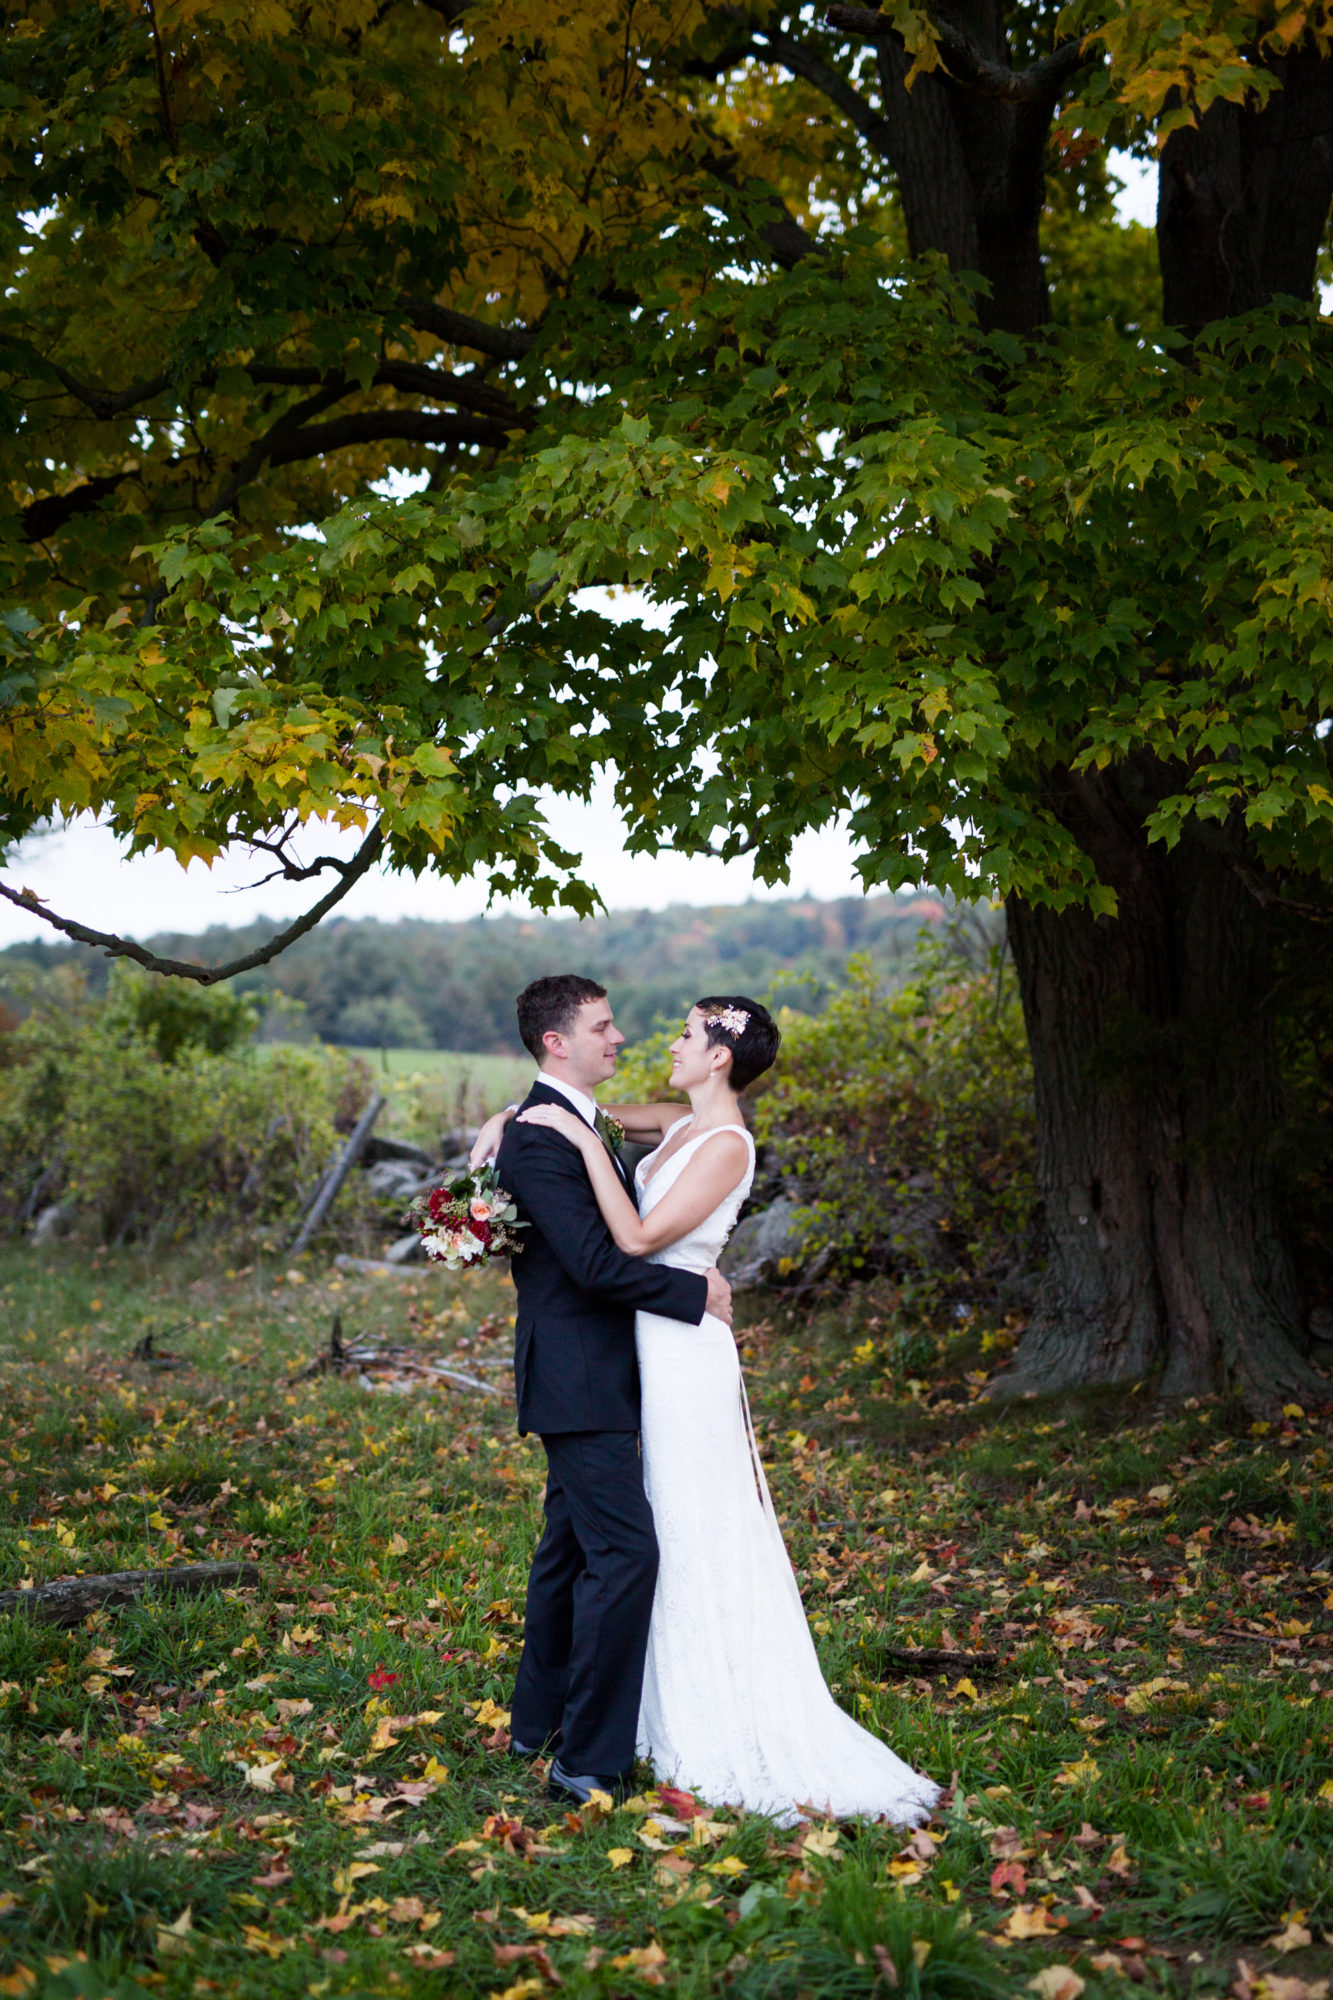 Couple Embrace Fall Wedding Massachusetts Zsuzsi Pal Photography Destination